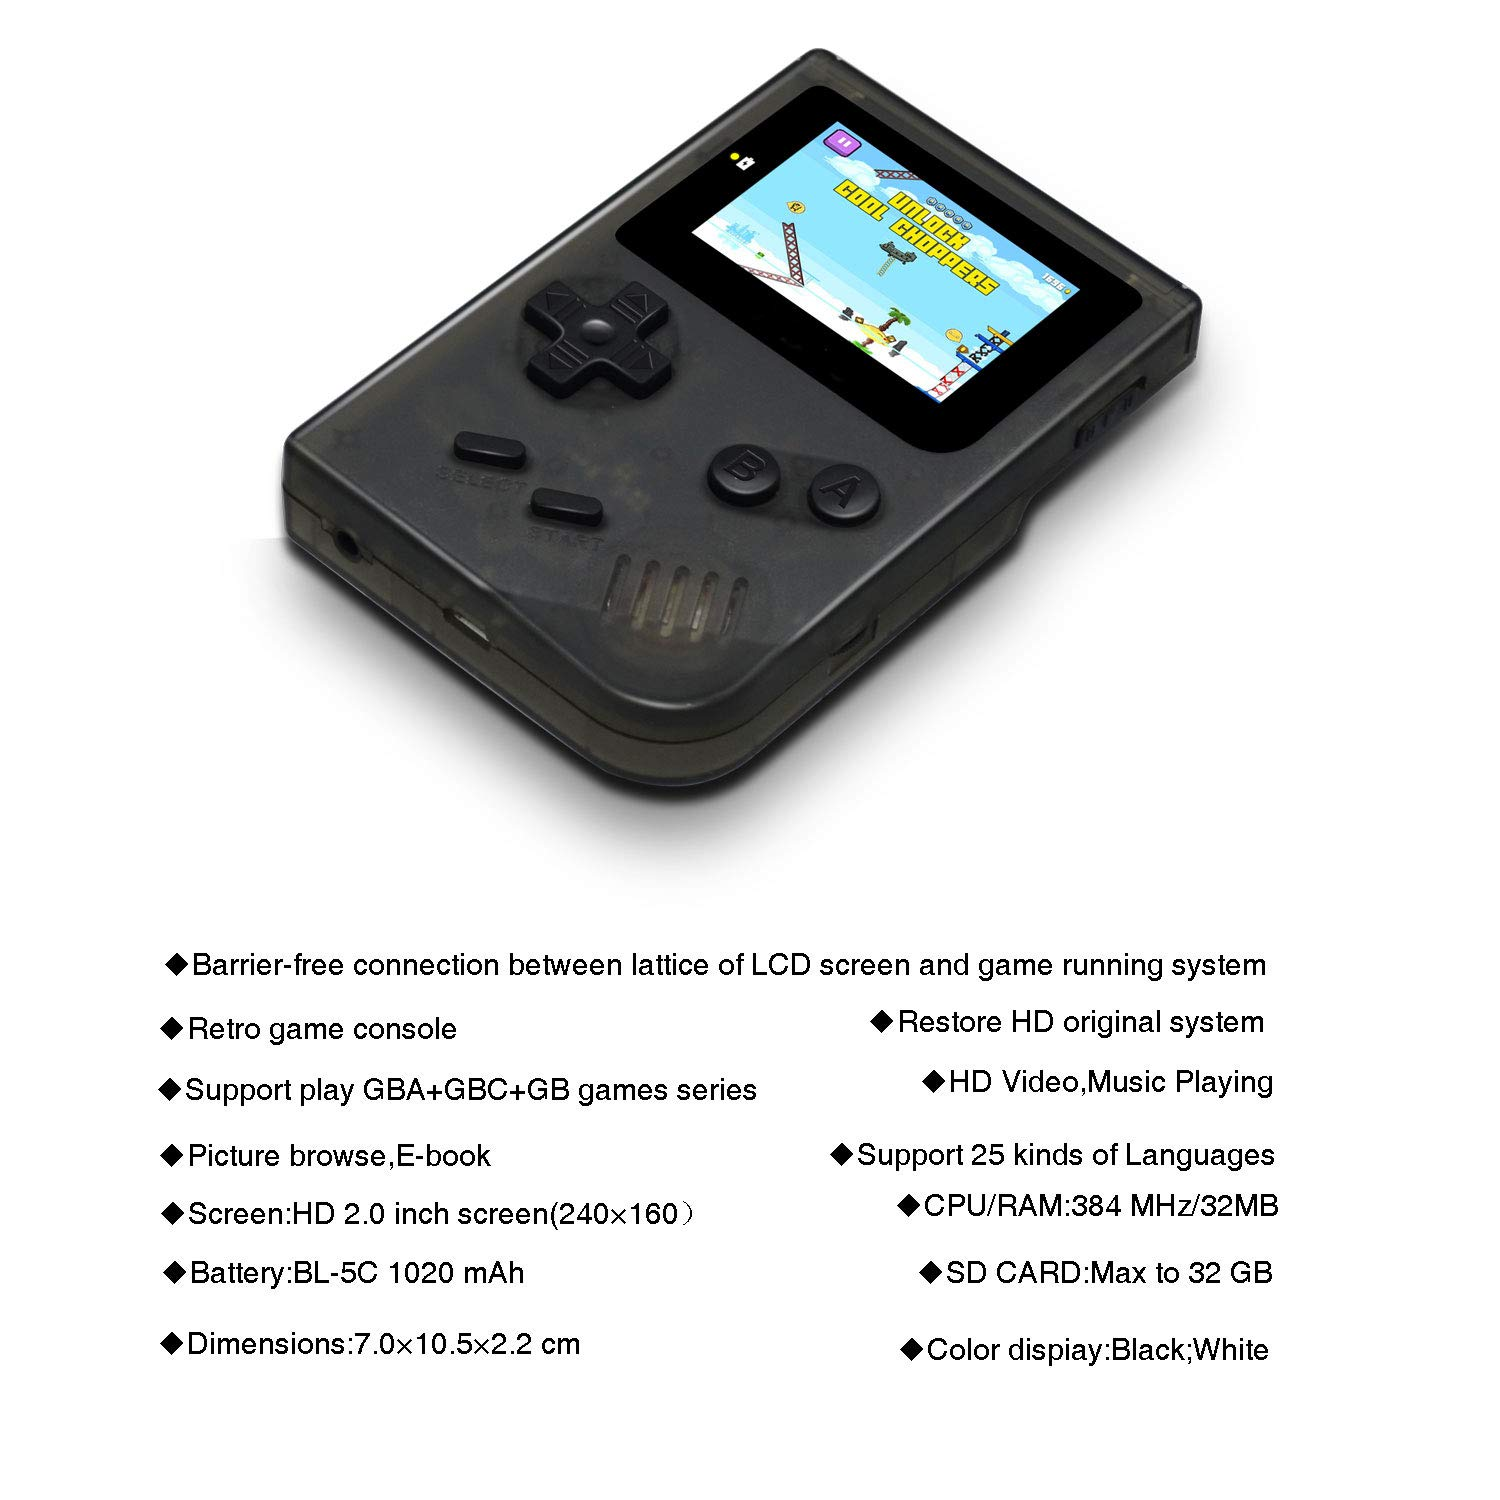 MJKJ Handheld Game Console , Retro Game Console 2 Inch HD Screen 548 Classic GBA Games , Birthday Presents for Children - Transparent Black by MJKJ (Image #5)